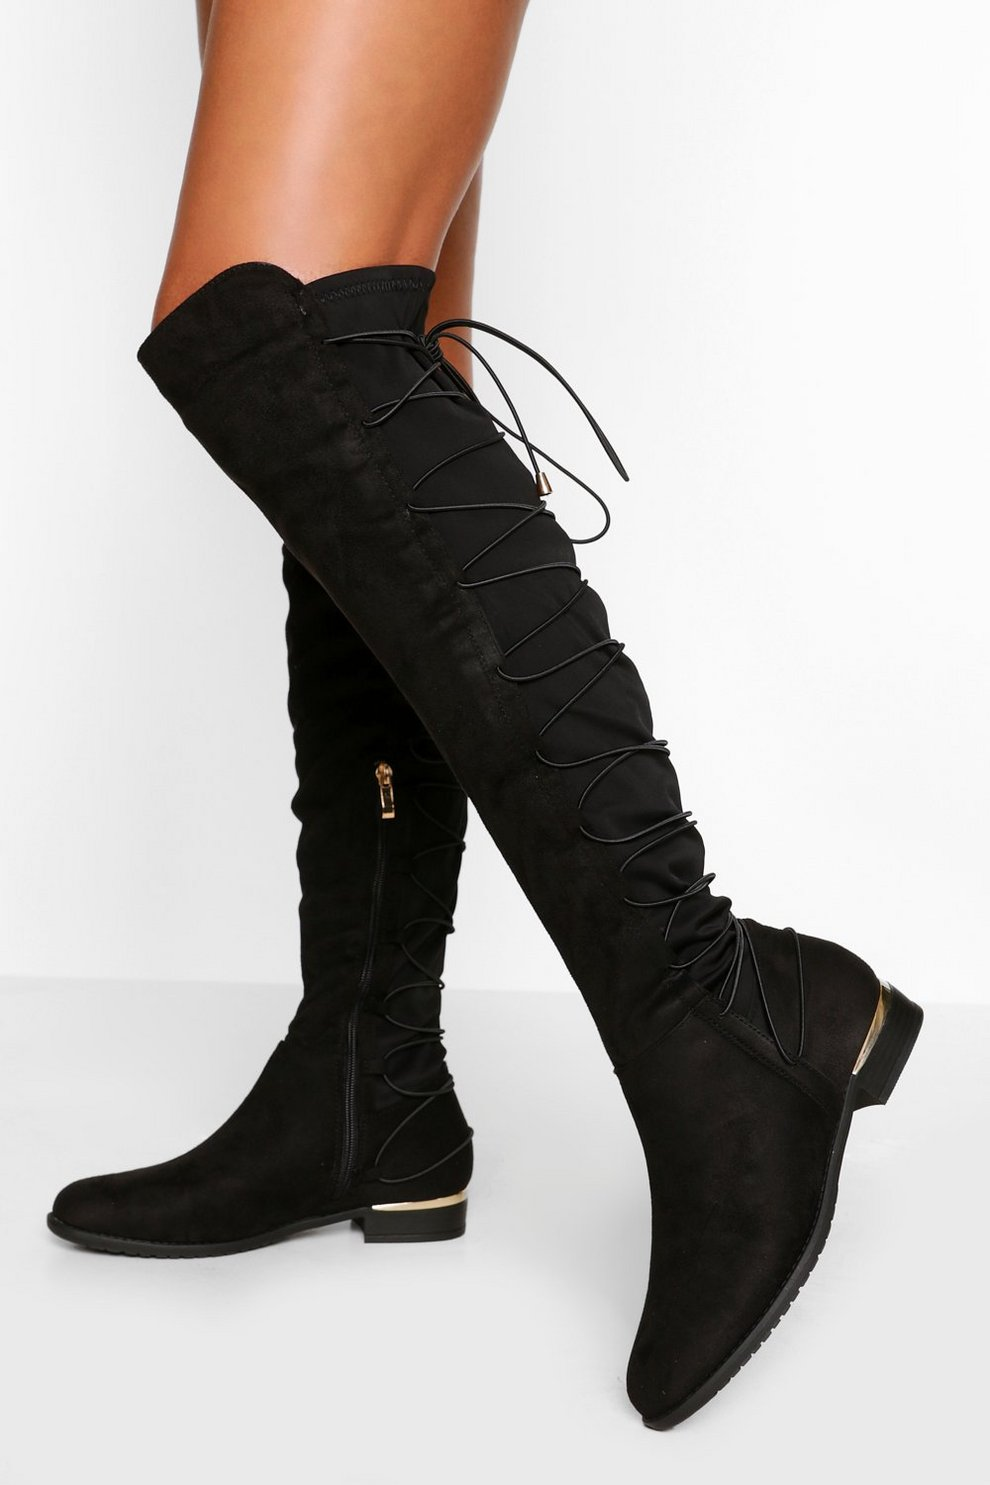 627f5fedddf7 Womens Black Bungee Lace Back Knee High Boots